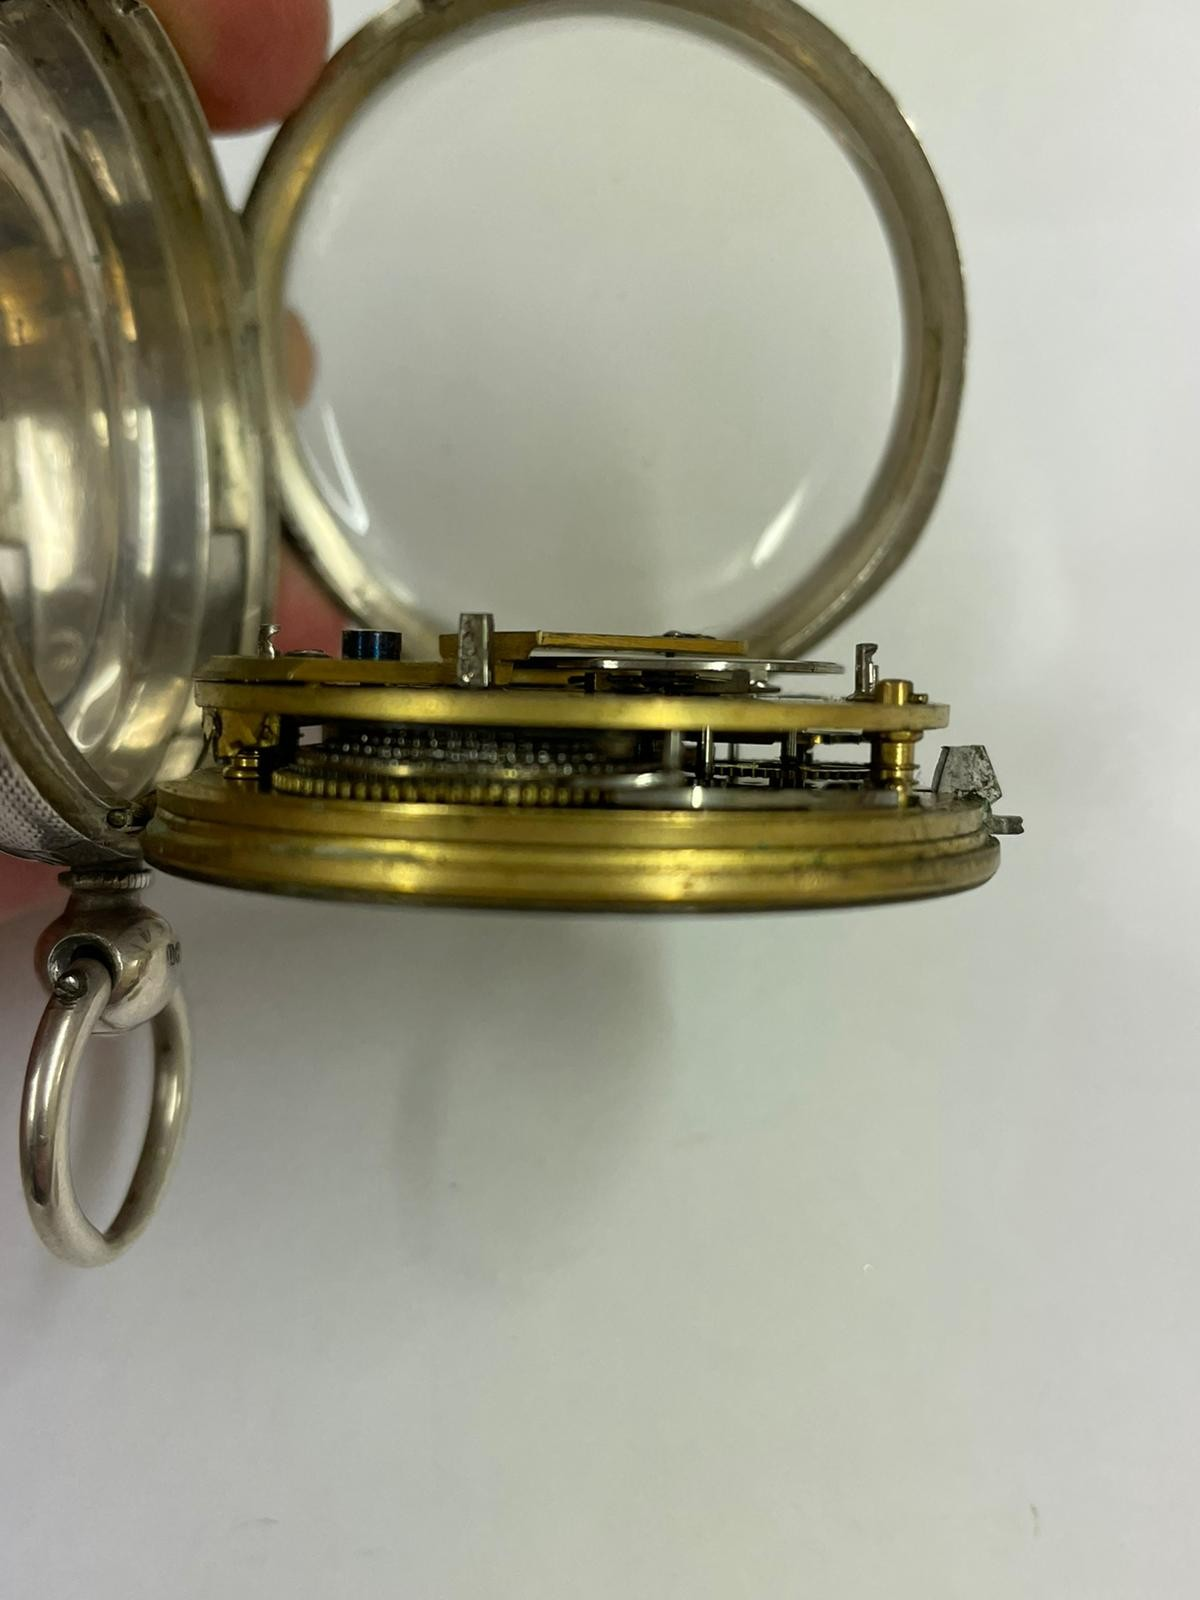 Antique gents silver fusee ( mercer London ) pocket watch no key tick if shaken sold as found - Image 3 of 6